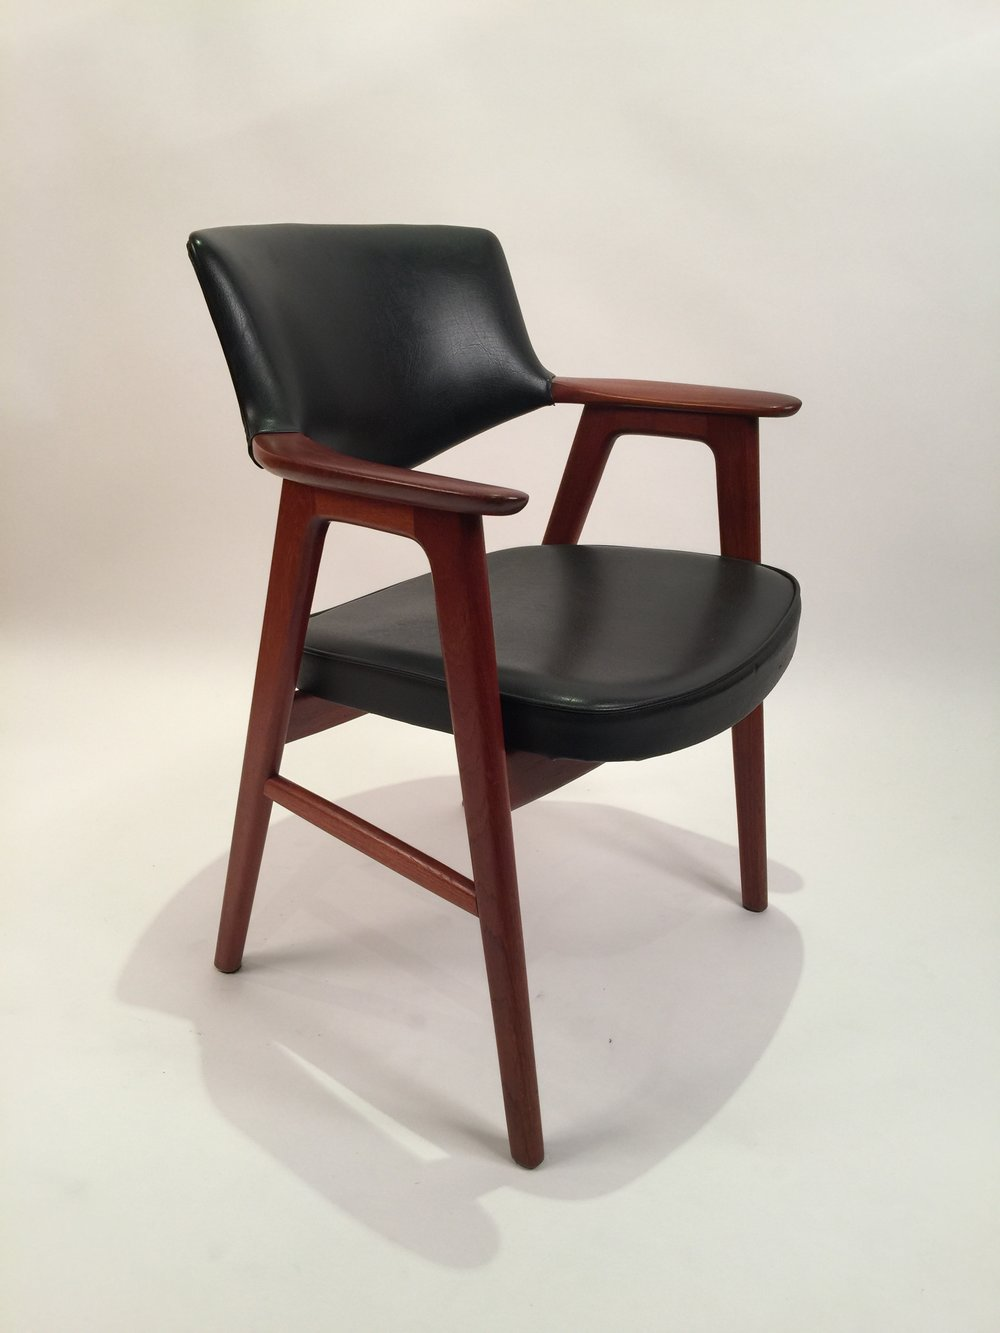 Erik Kierkegaard for Hong Stolfabrik armchair in black leather 10.JPG